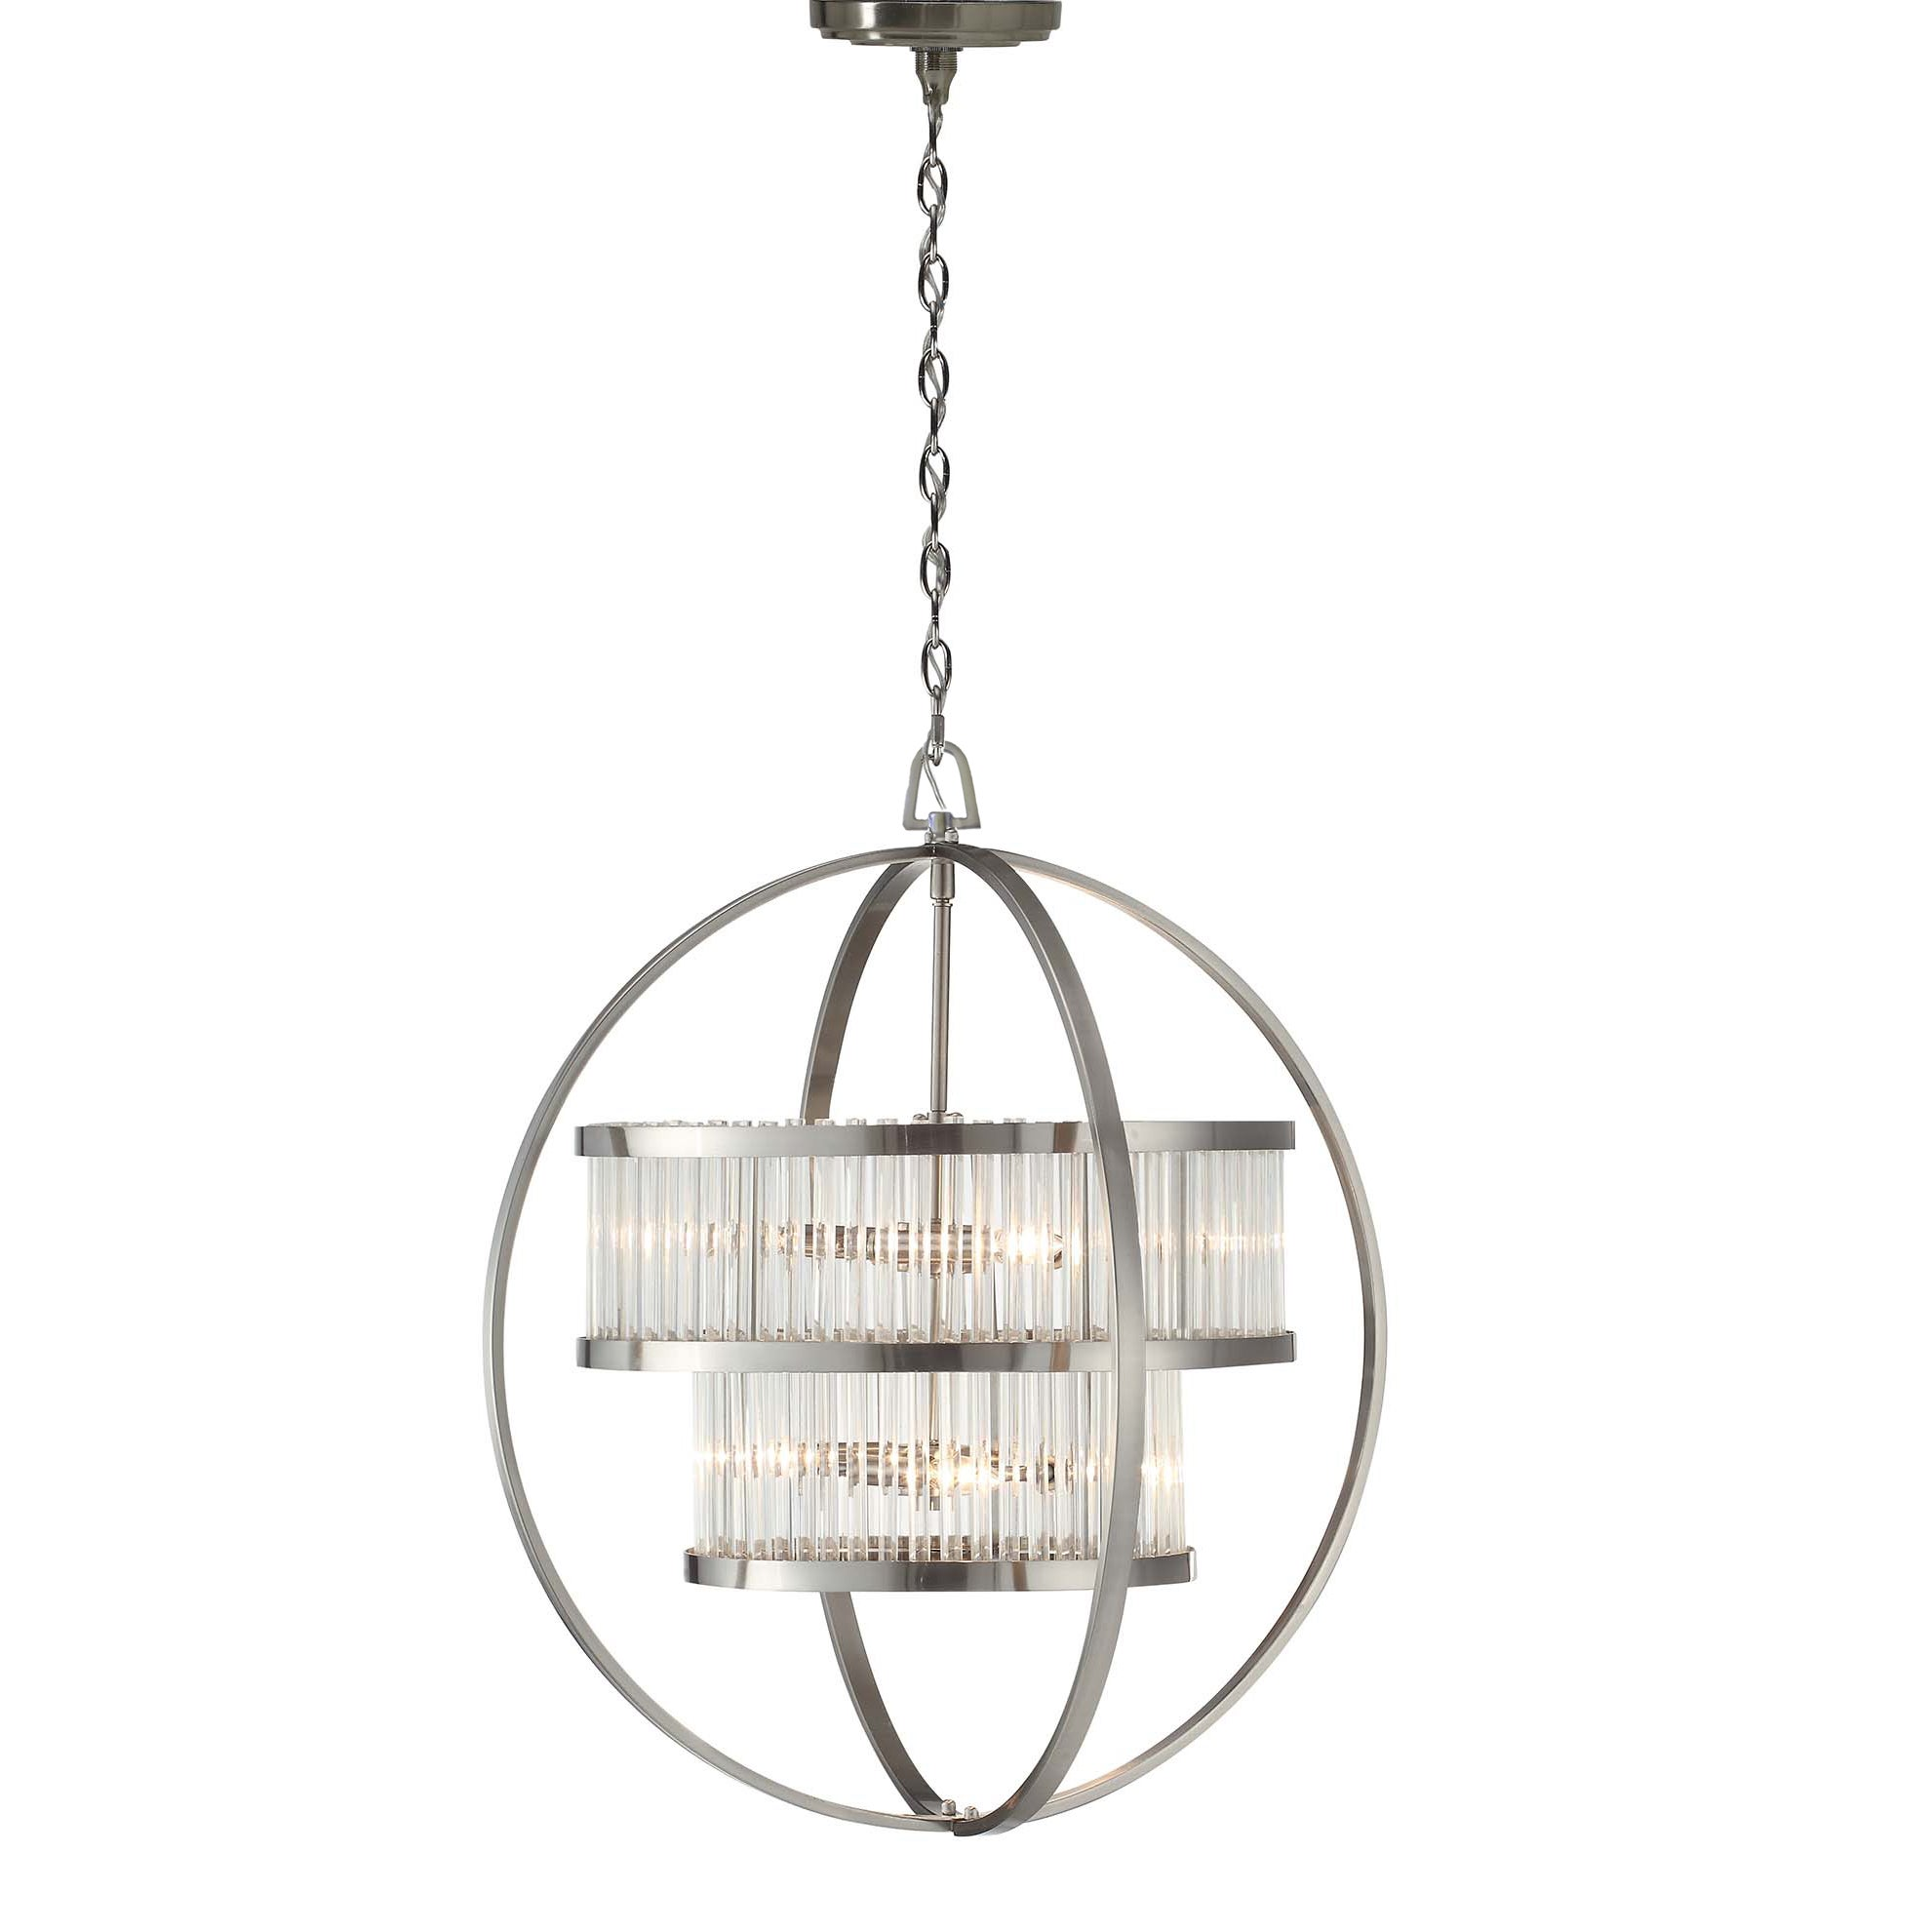 Brushed Nickel Crystal Orb 6 Light Chandelier Free Shipping Today 17484997